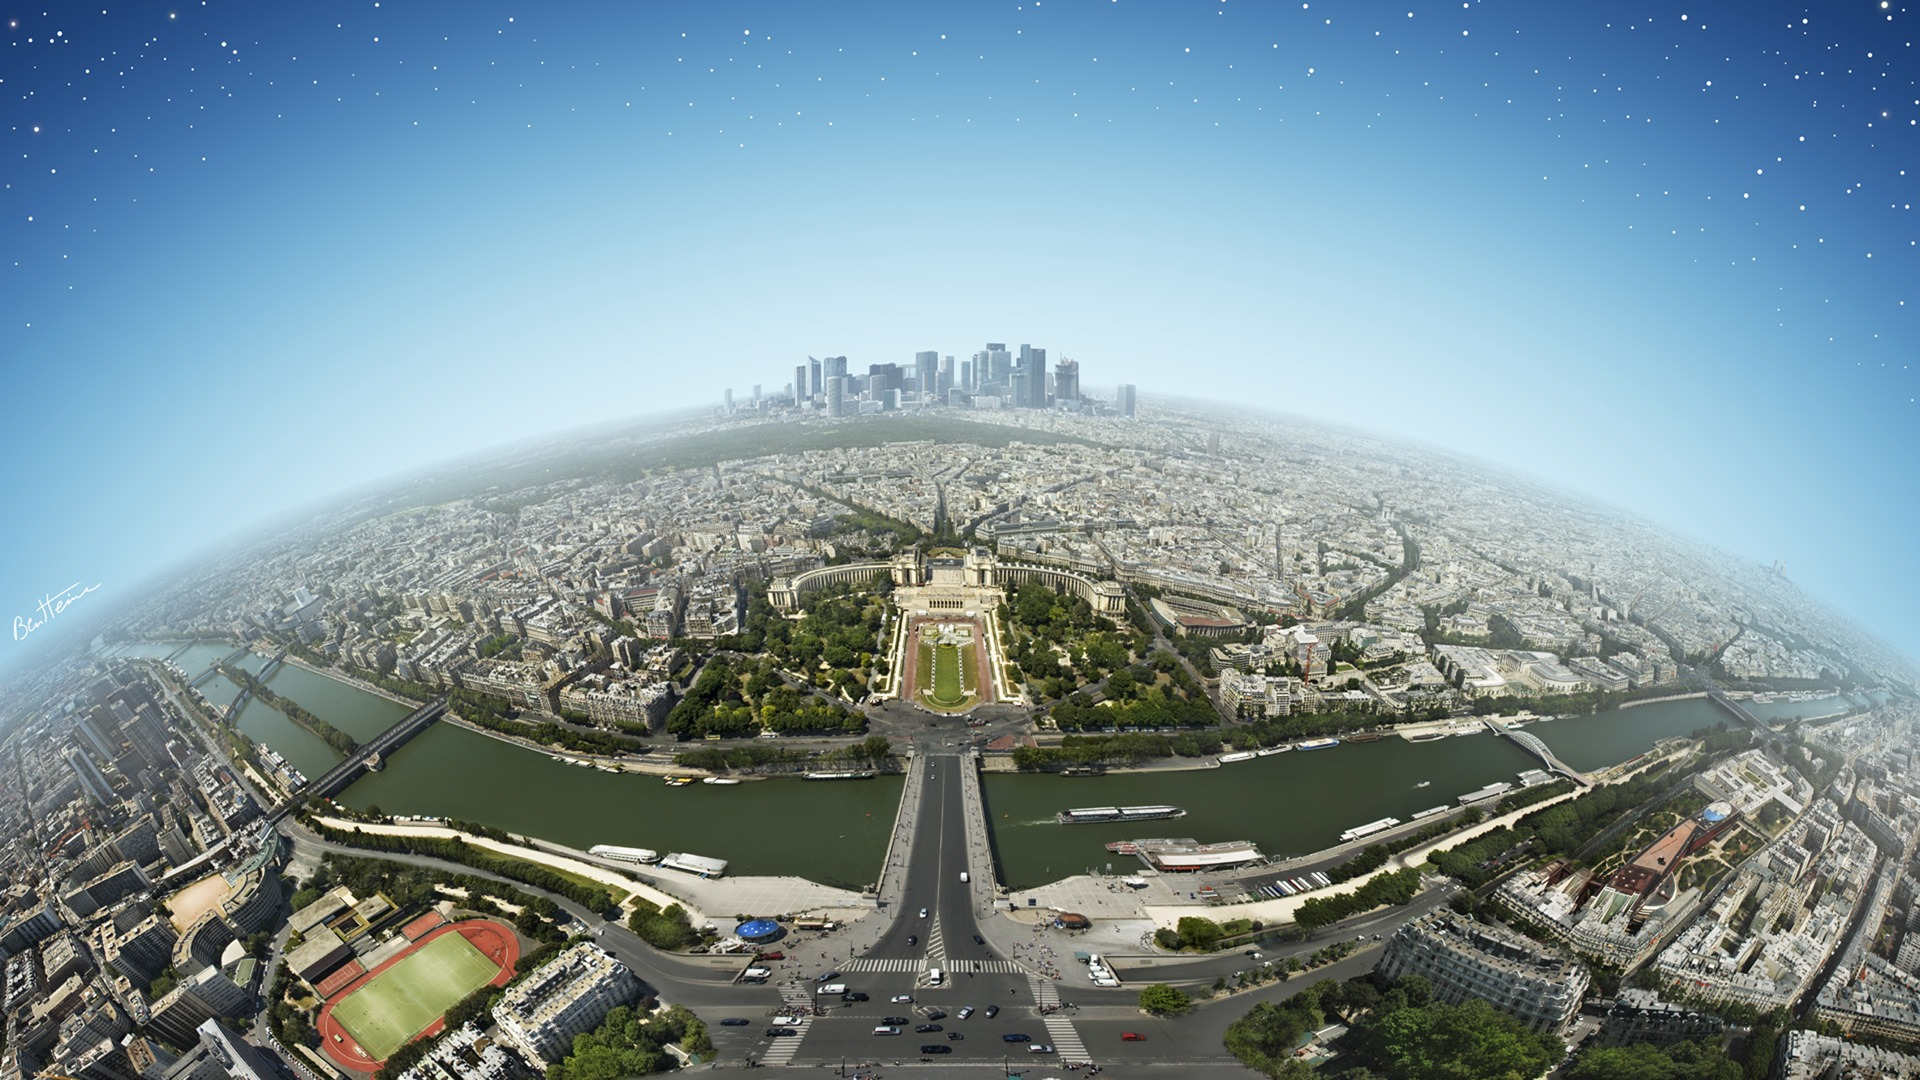 126 paris hd wallpapers | background images - wallpaper abyss